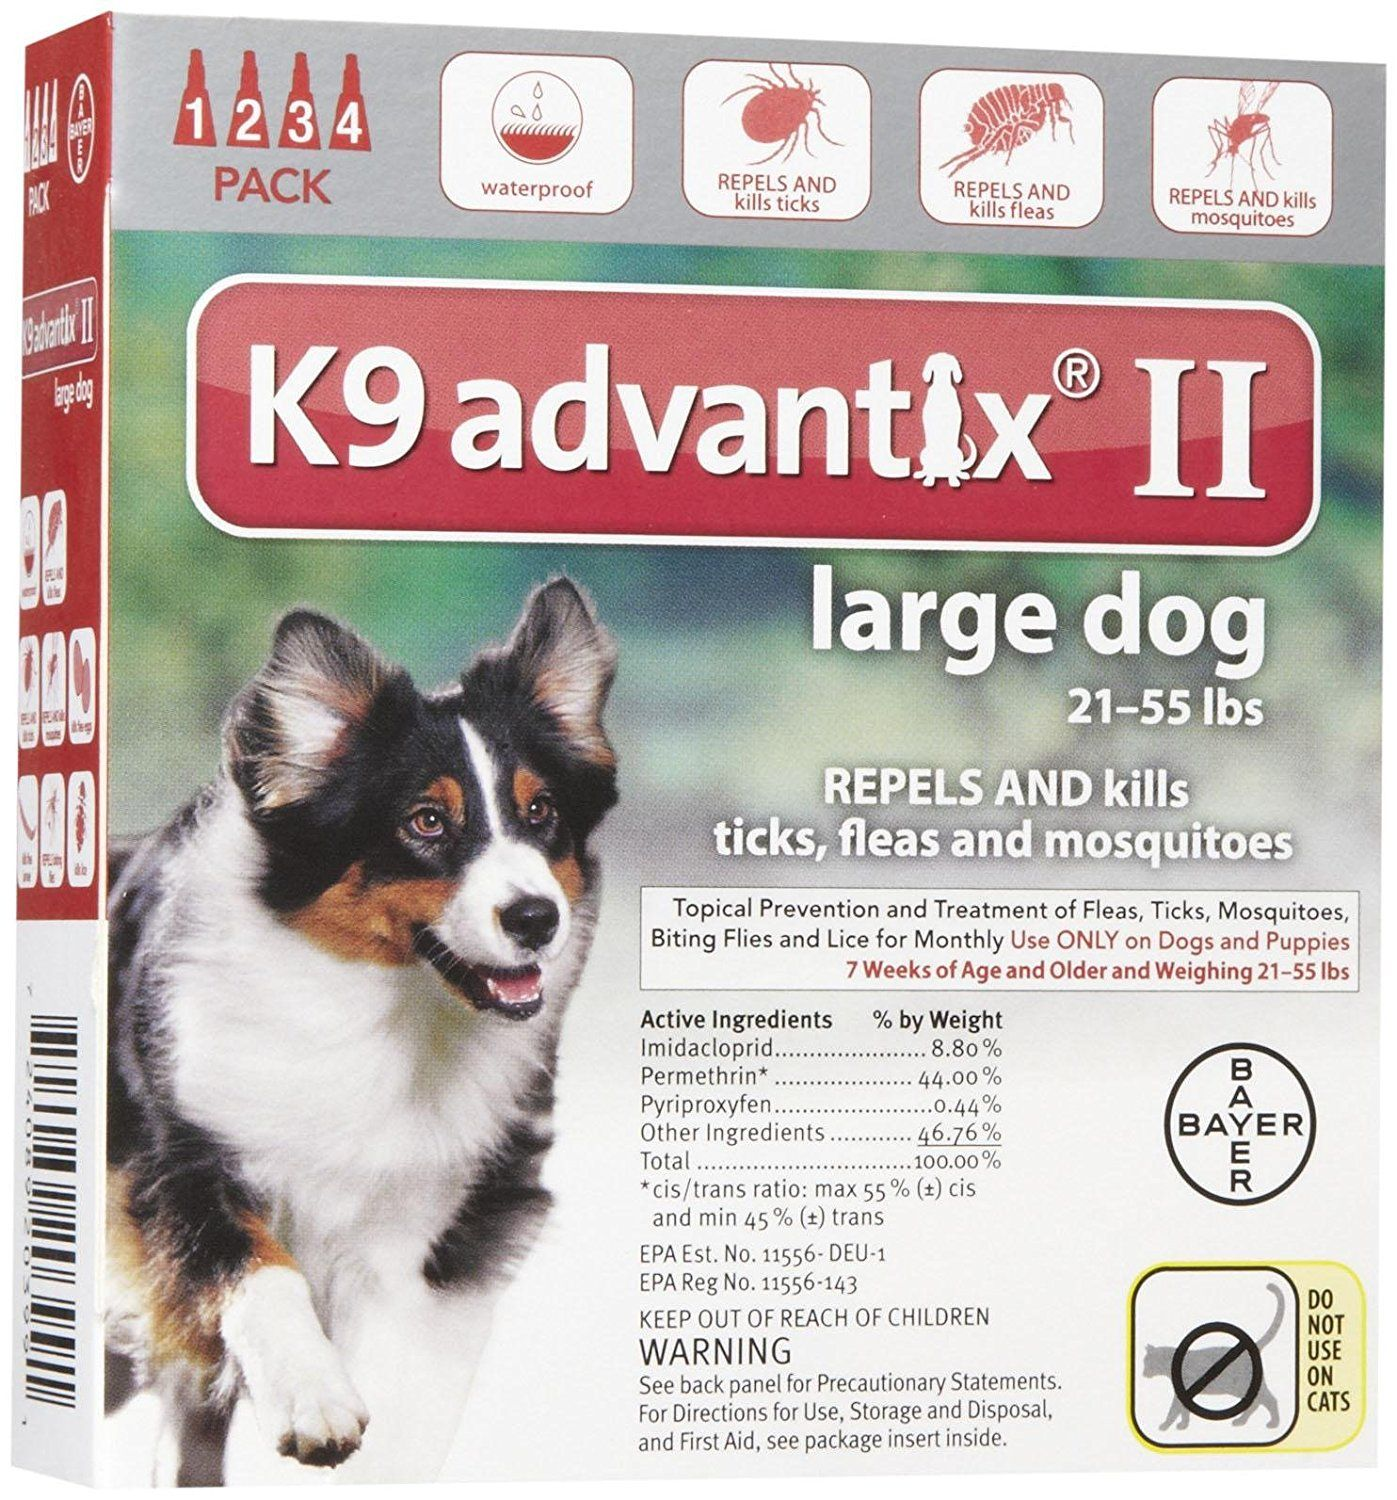 K9 Advantix Ii Large Dog 4 Pack Stop Everything And Read More Details Here Flea And Tick Control Kill Fleas On Dogs Small Dogs Fleas